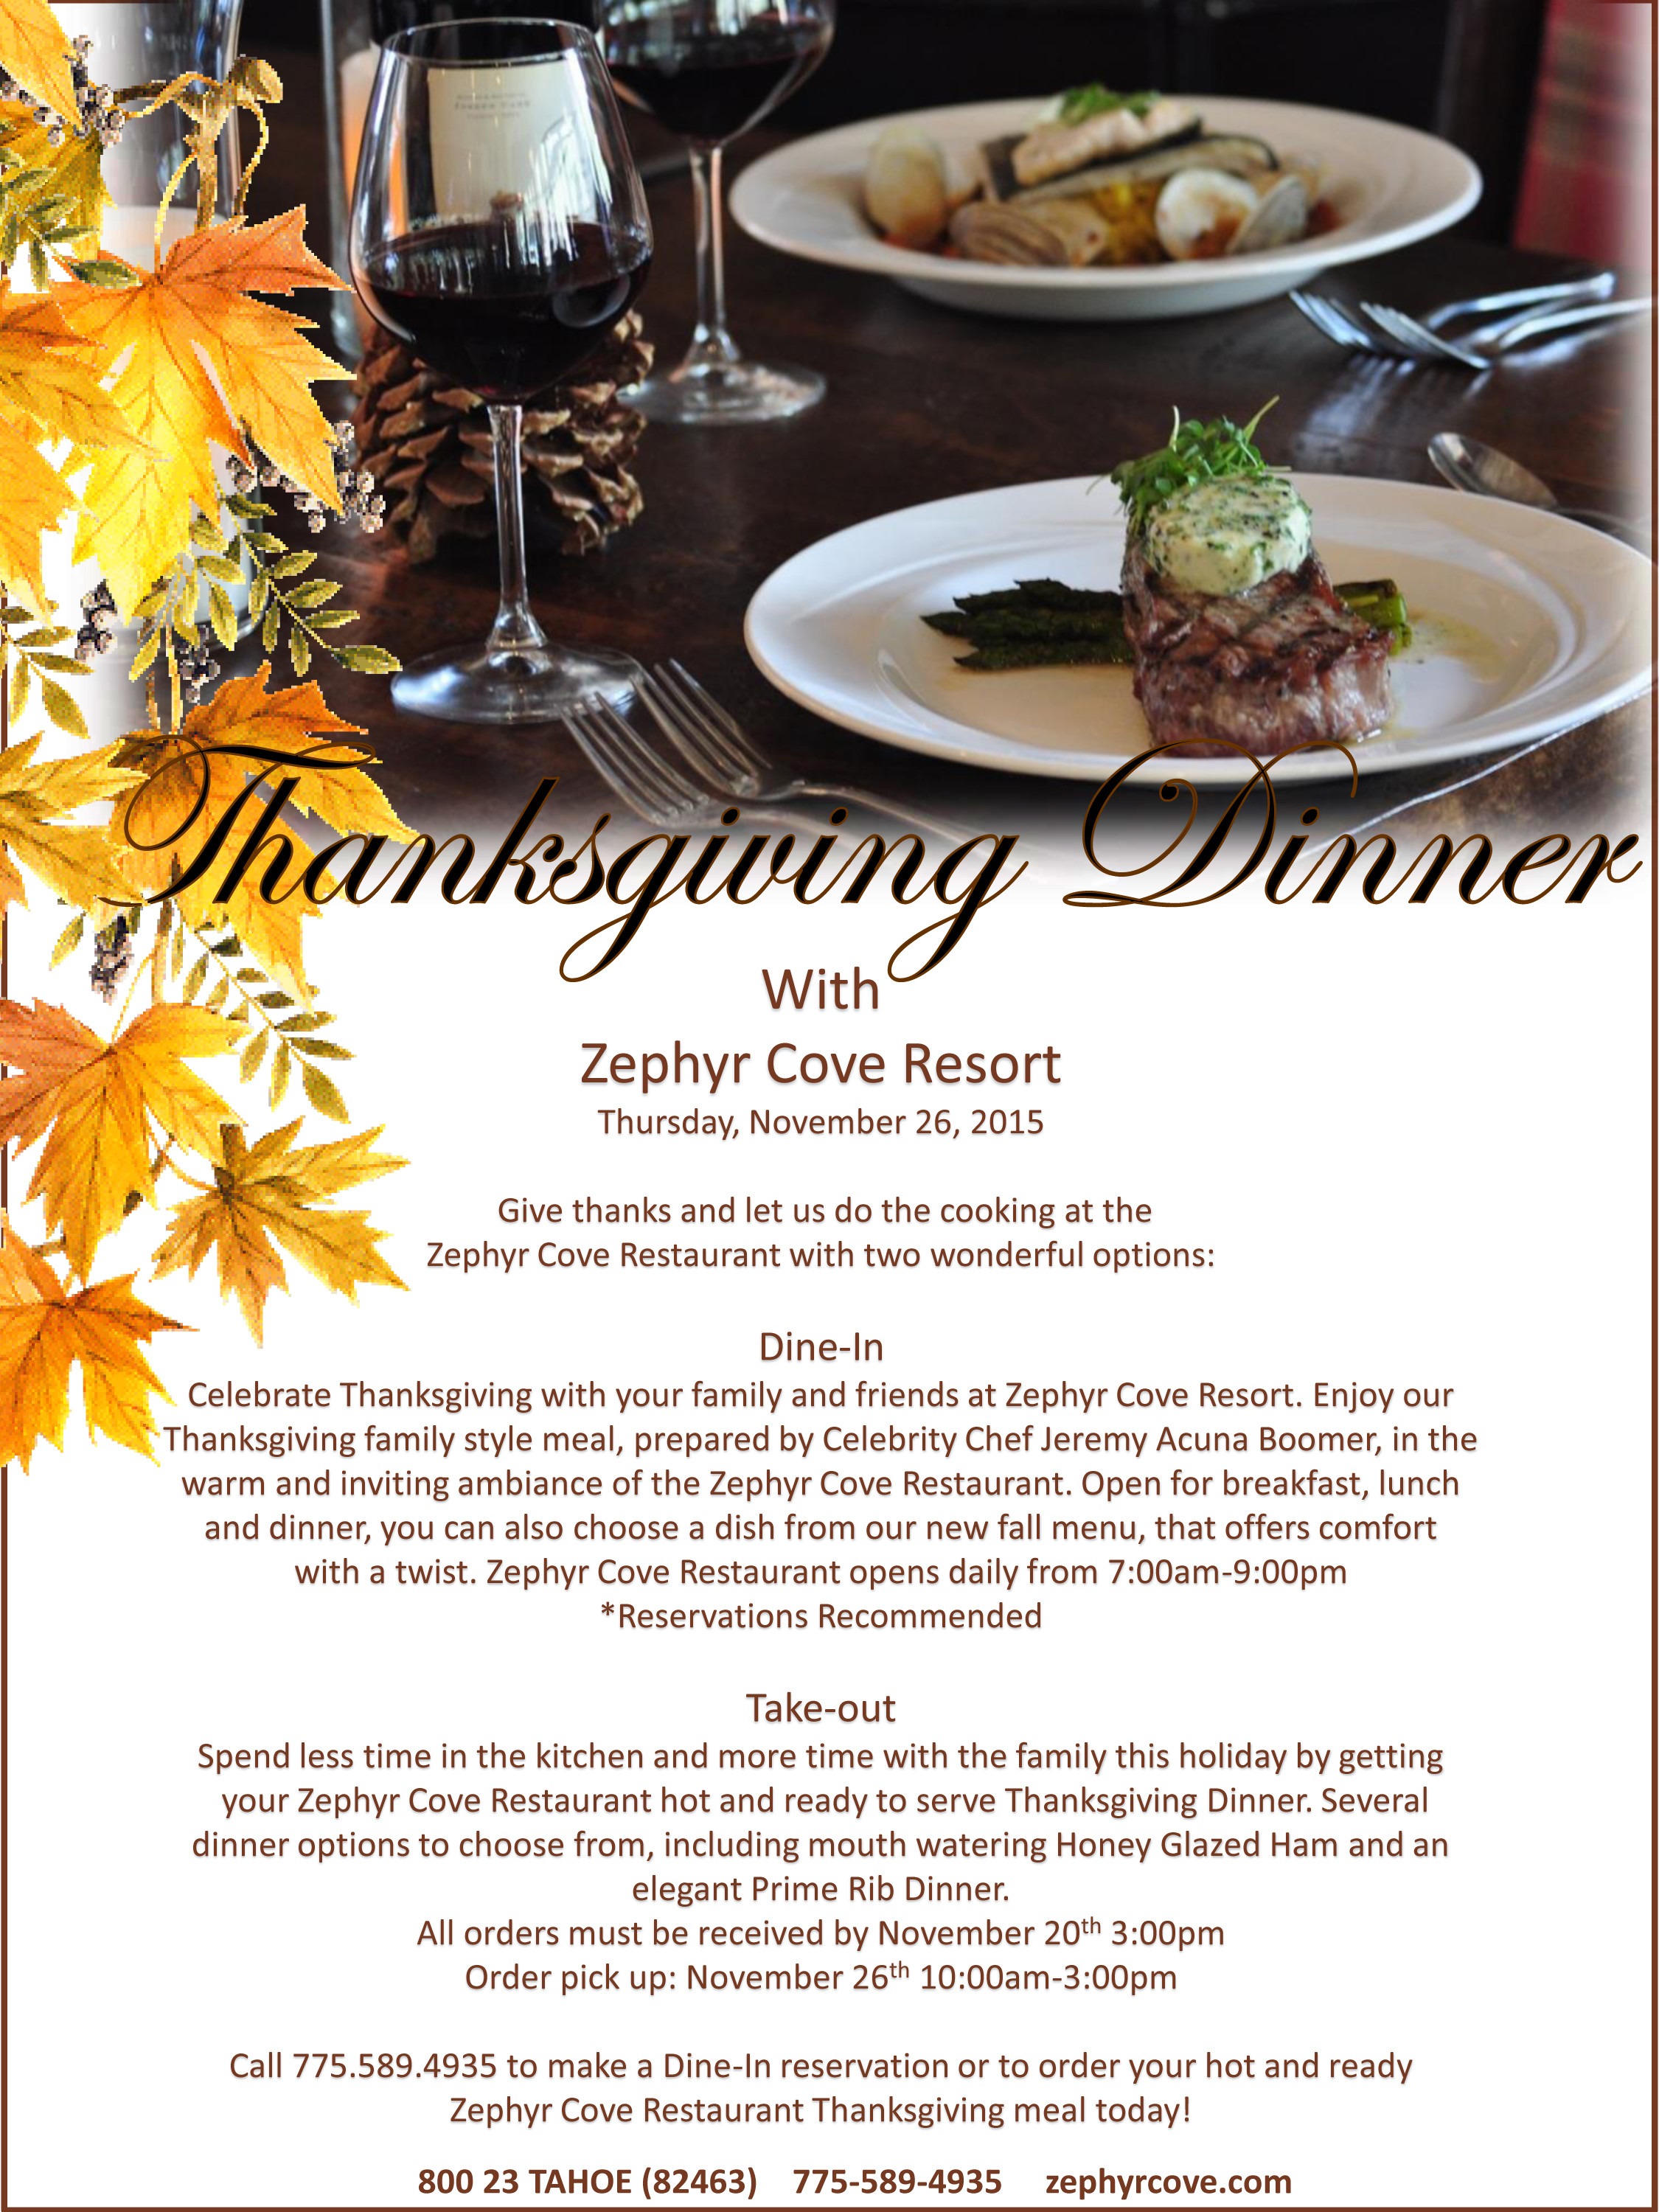 Restaurant Thanksgiving Dinner  Thanksgiving Dinner at the Zephyr Cove Restaurant